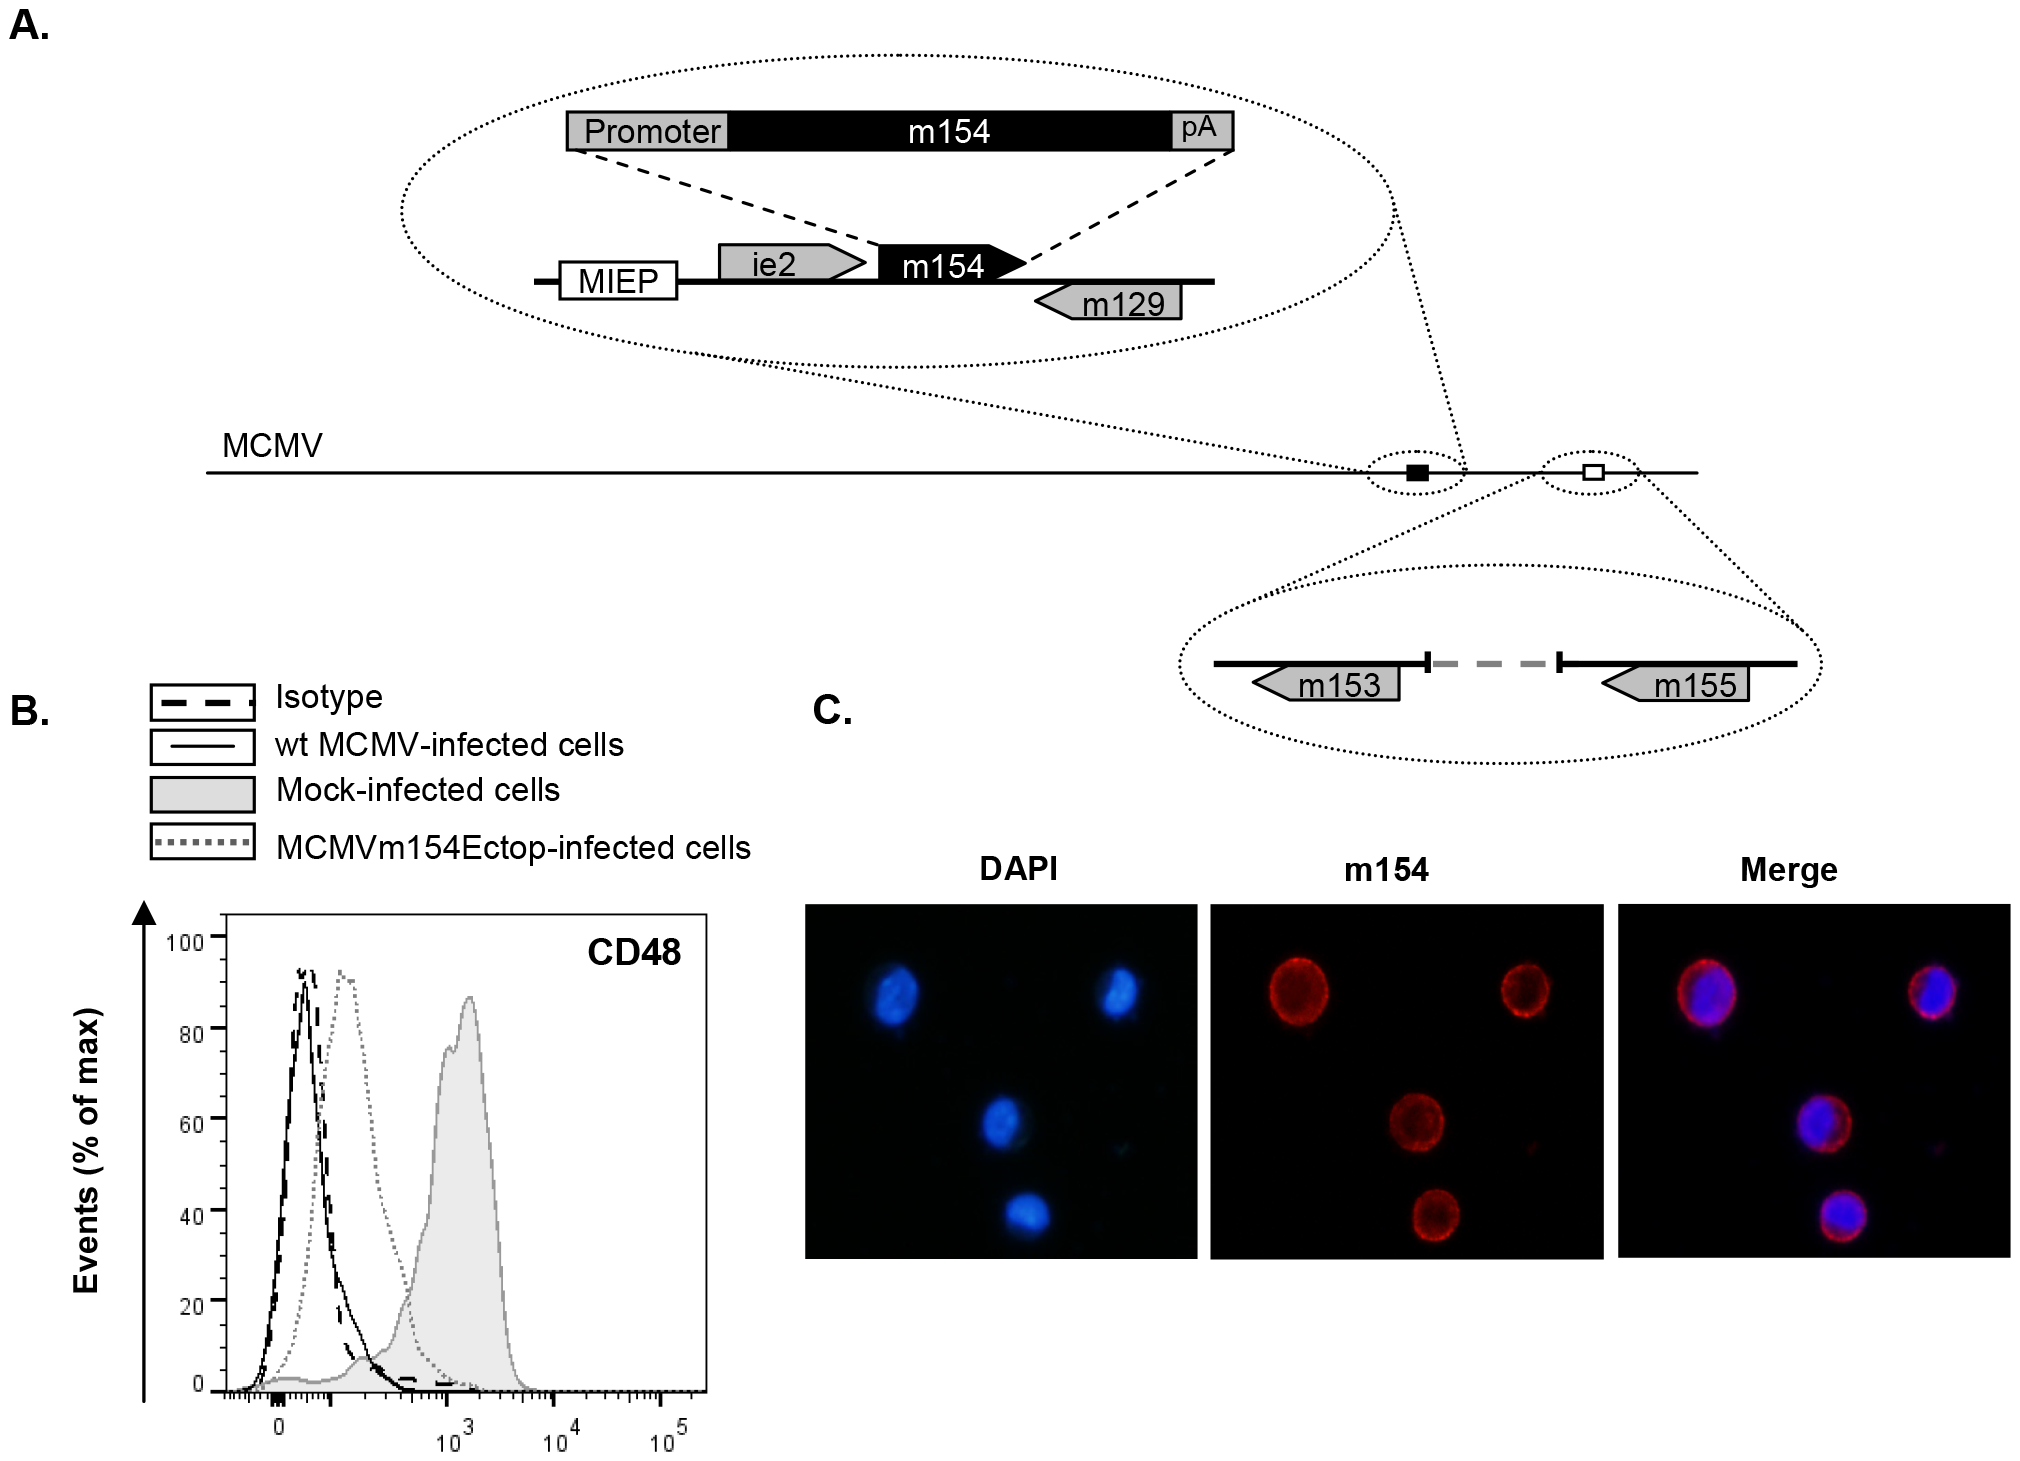 The <i>m154</i> gene ectopically expressed within the MCMVΔm154 genome decreases CD48 surface levels on MCMV-infected macrophages.